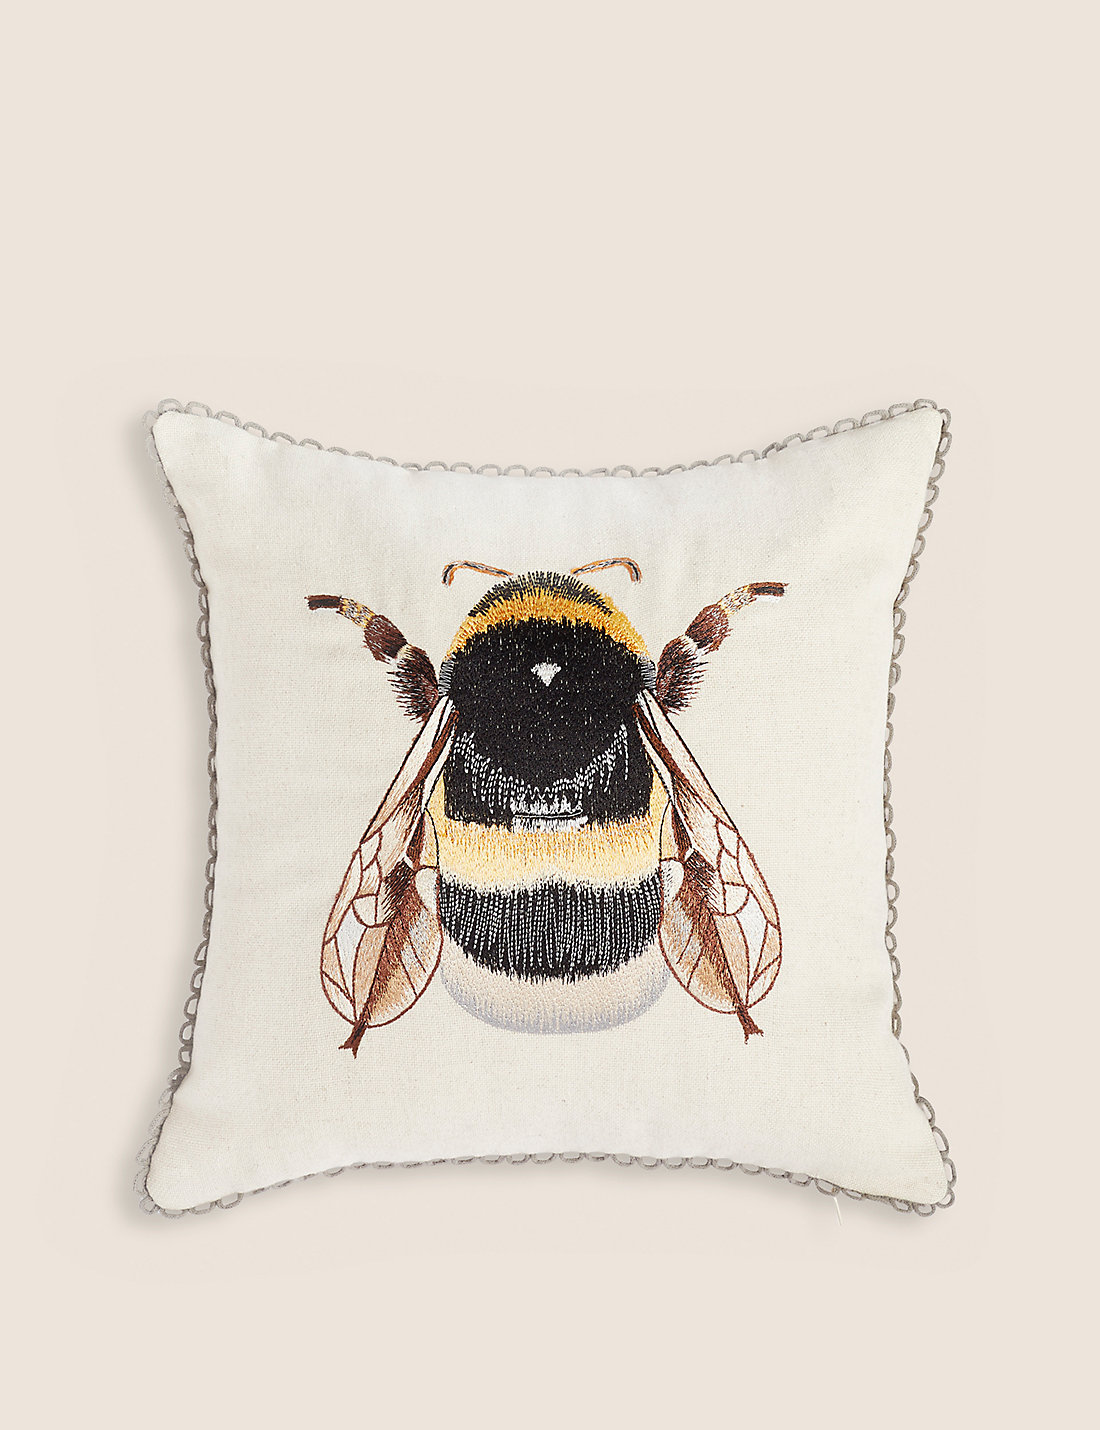 Bumble bee embroidery designs car pictures - Bumblebee Embroidered Cushion